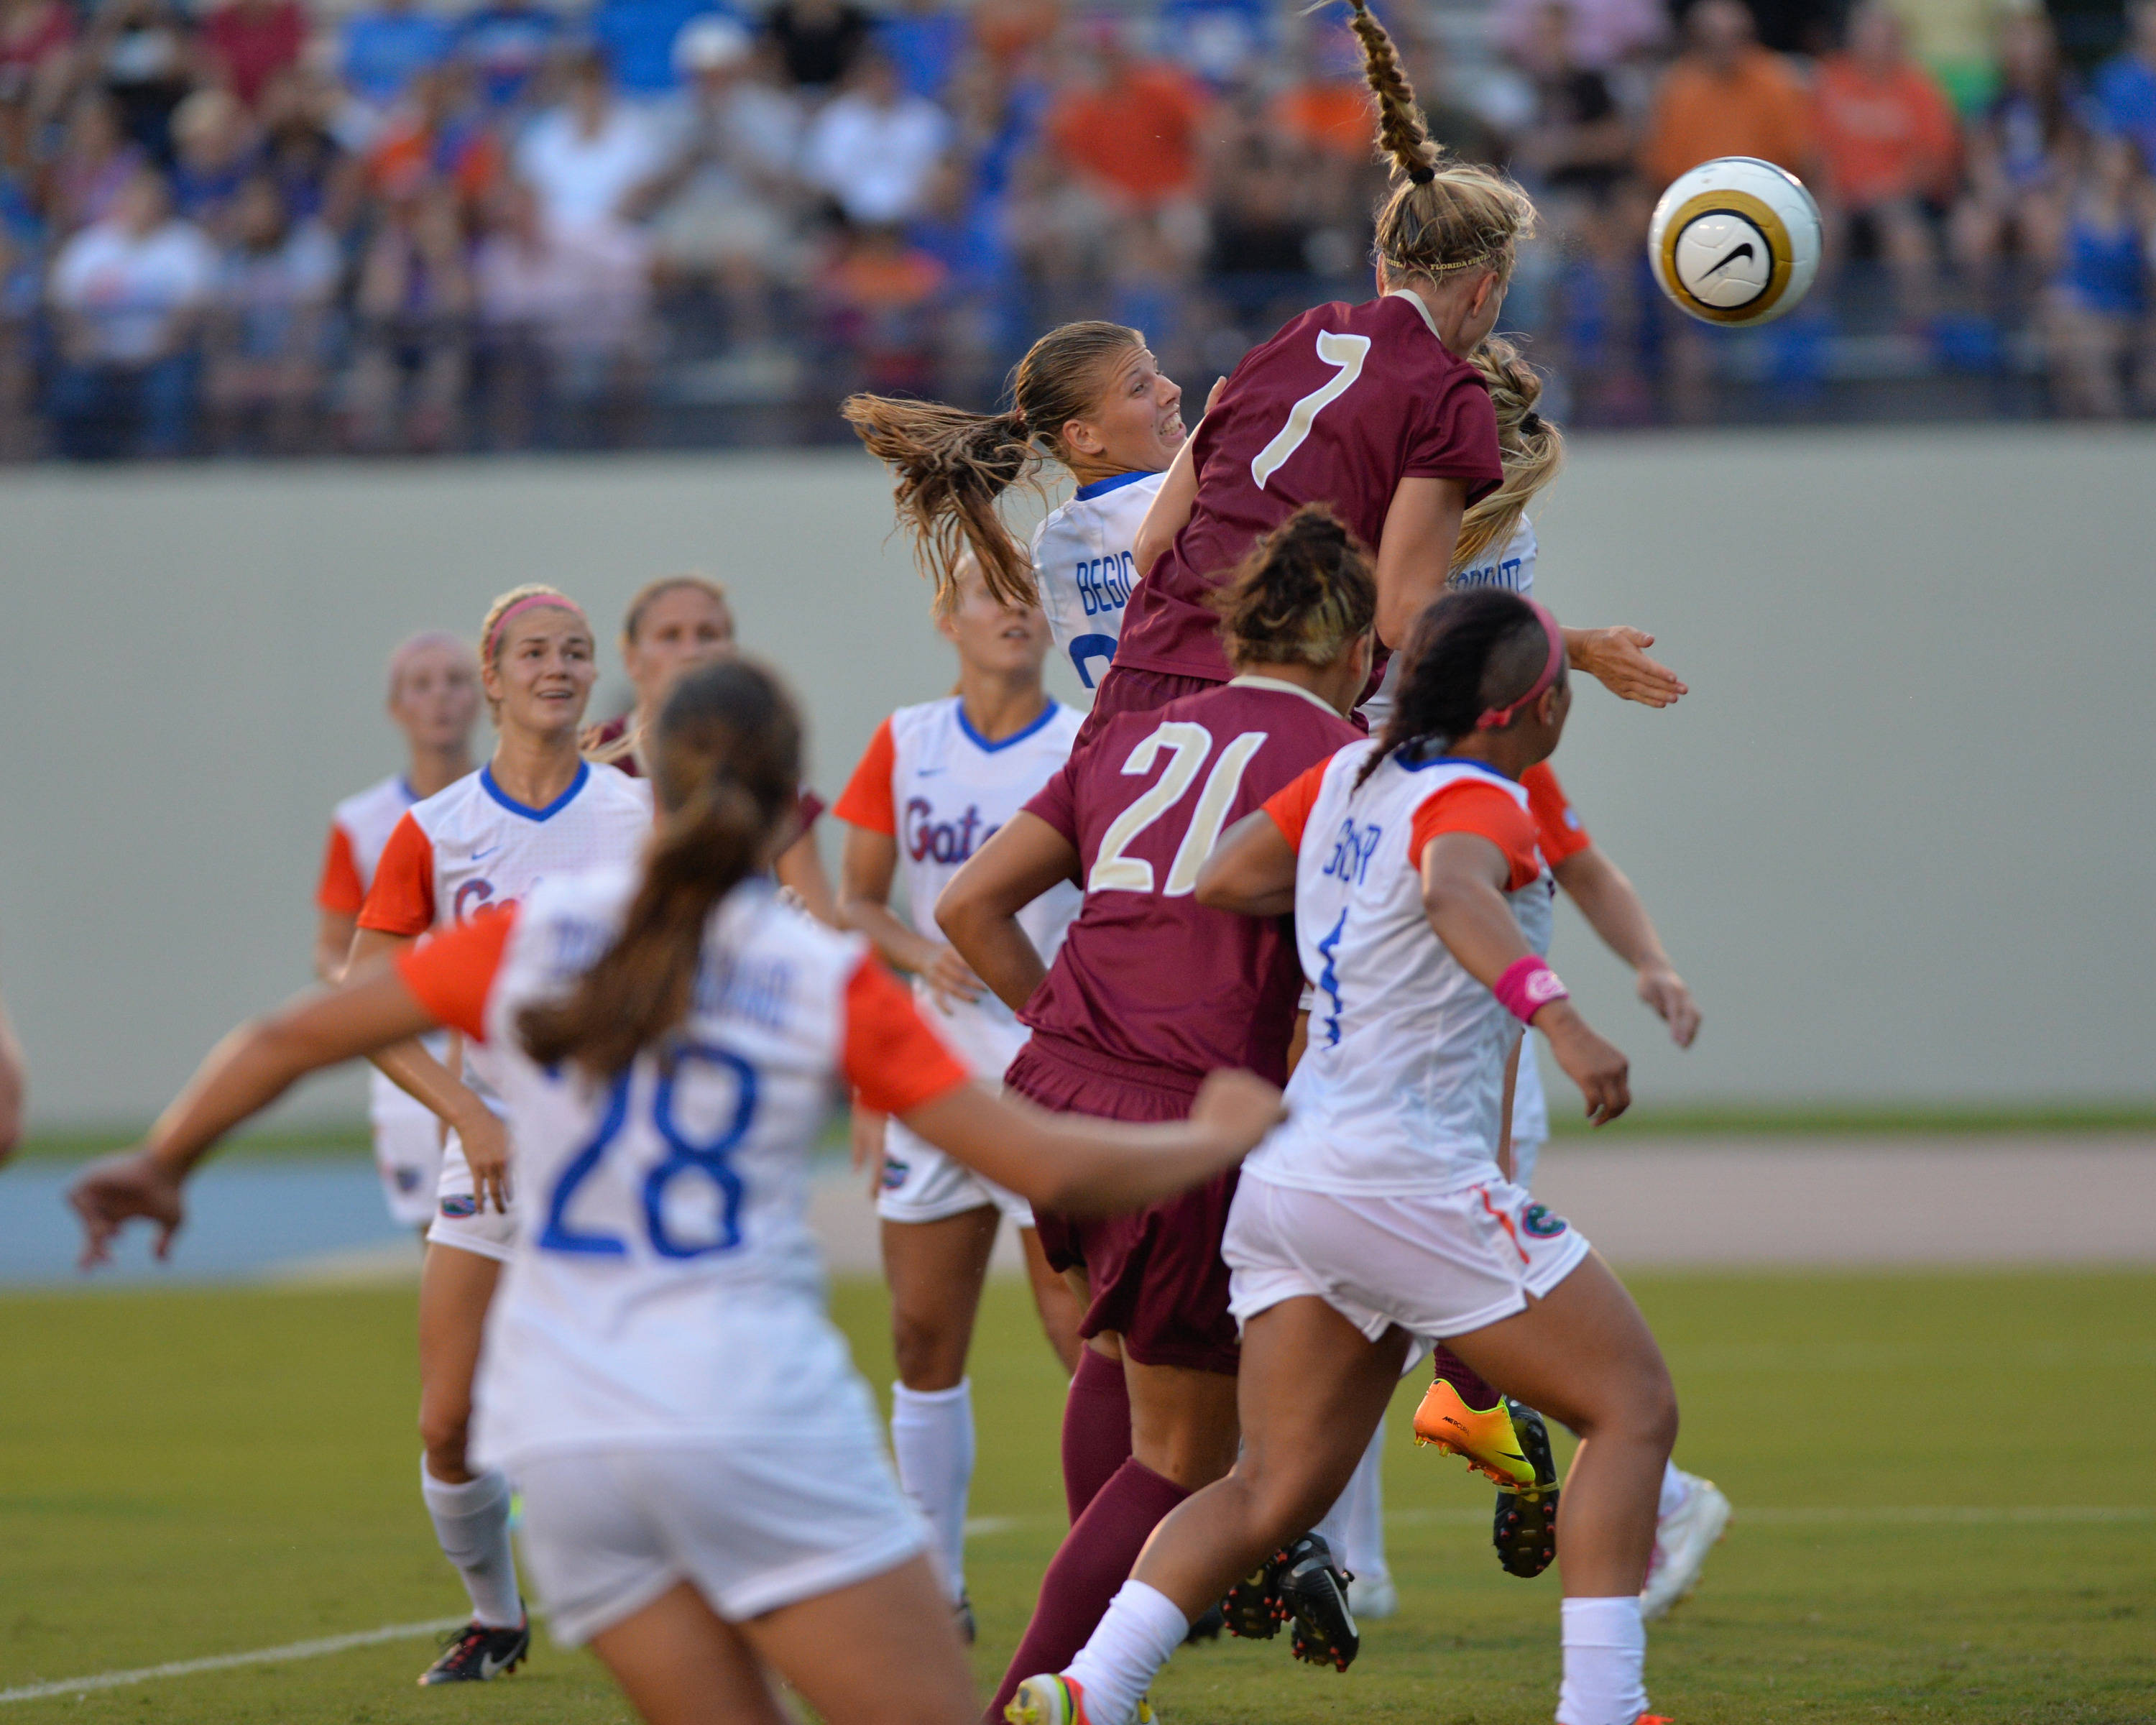 Dagny Brynjarsdottir soars through the air to head in her second goal of the evening.